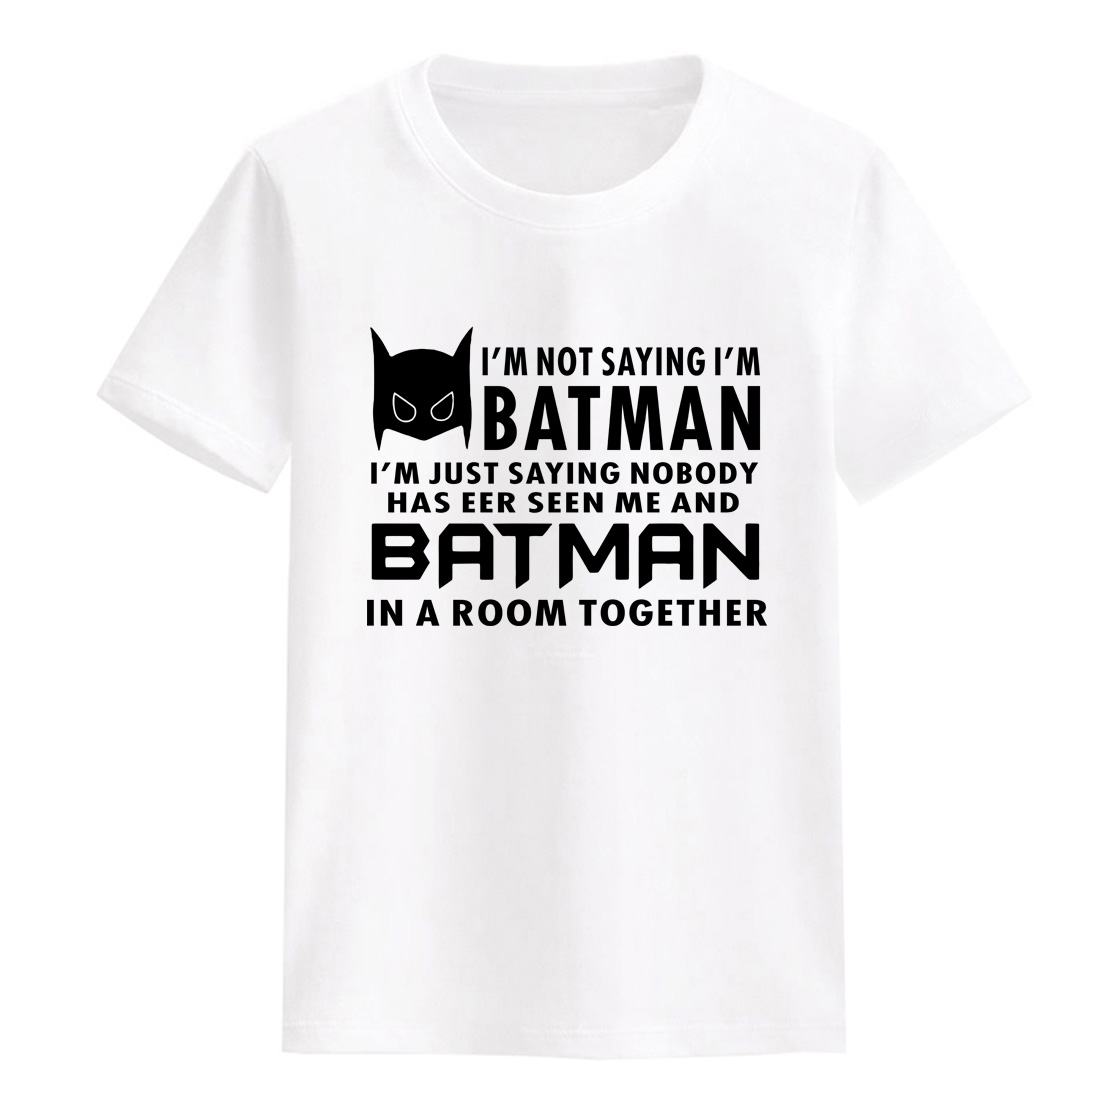 Clothes for girls boys 2018 summer child T-shirts BATMAN marvel casual crossfit T-shirt for girl boy brand clothing fitness top